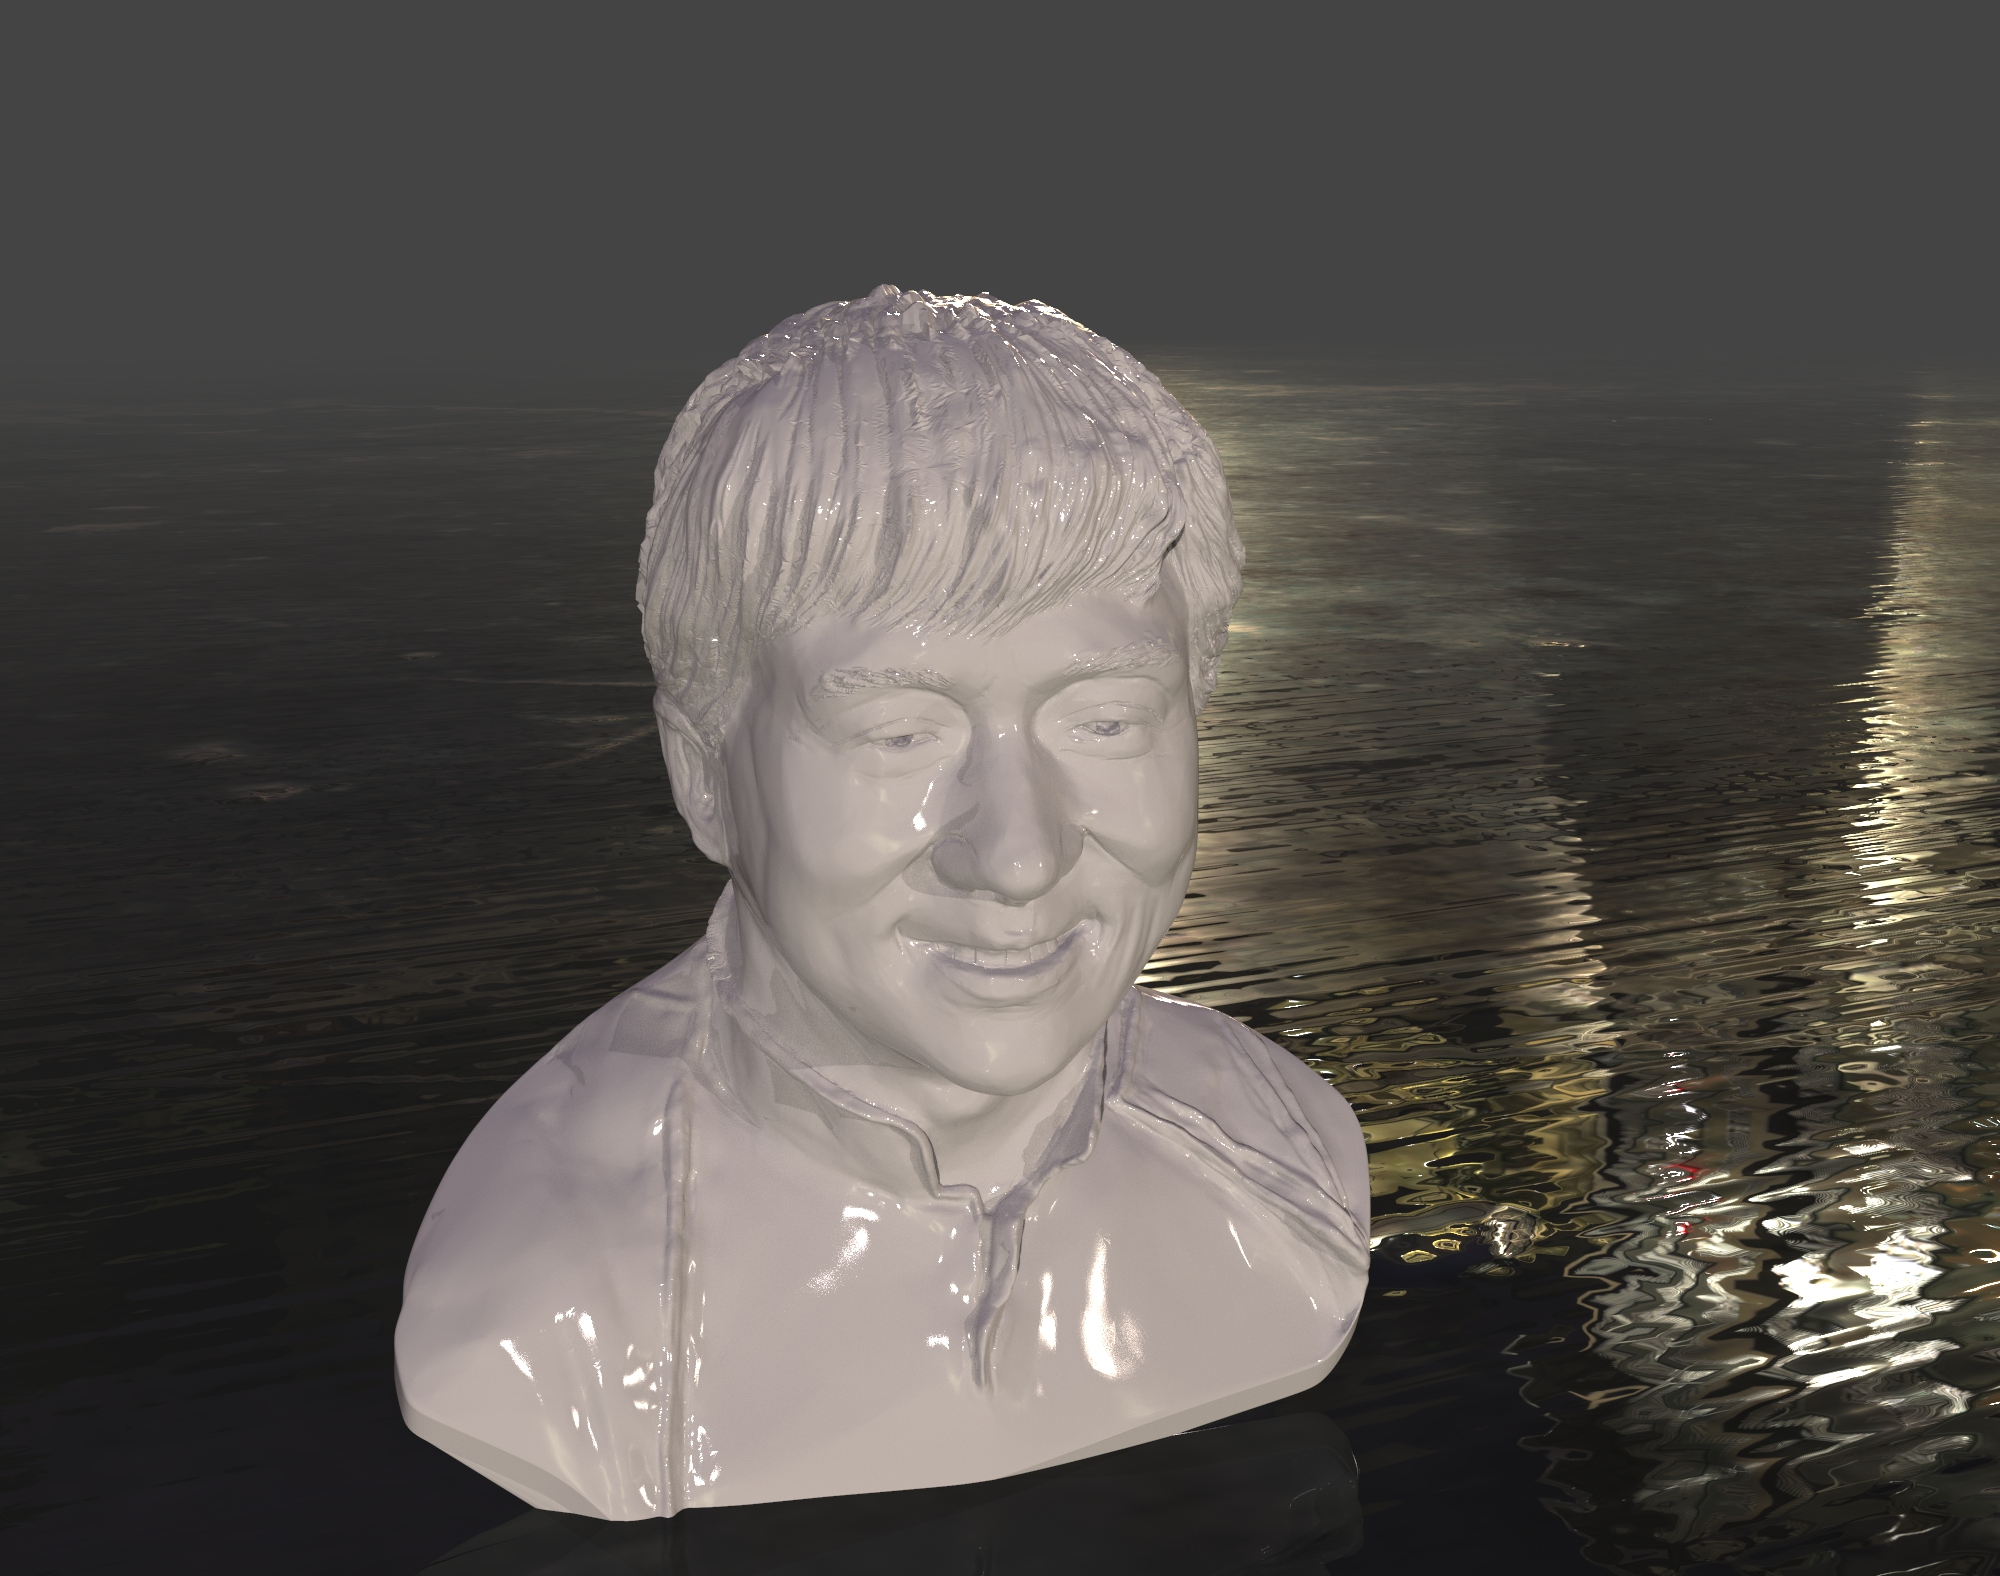 Jackie Chan bust